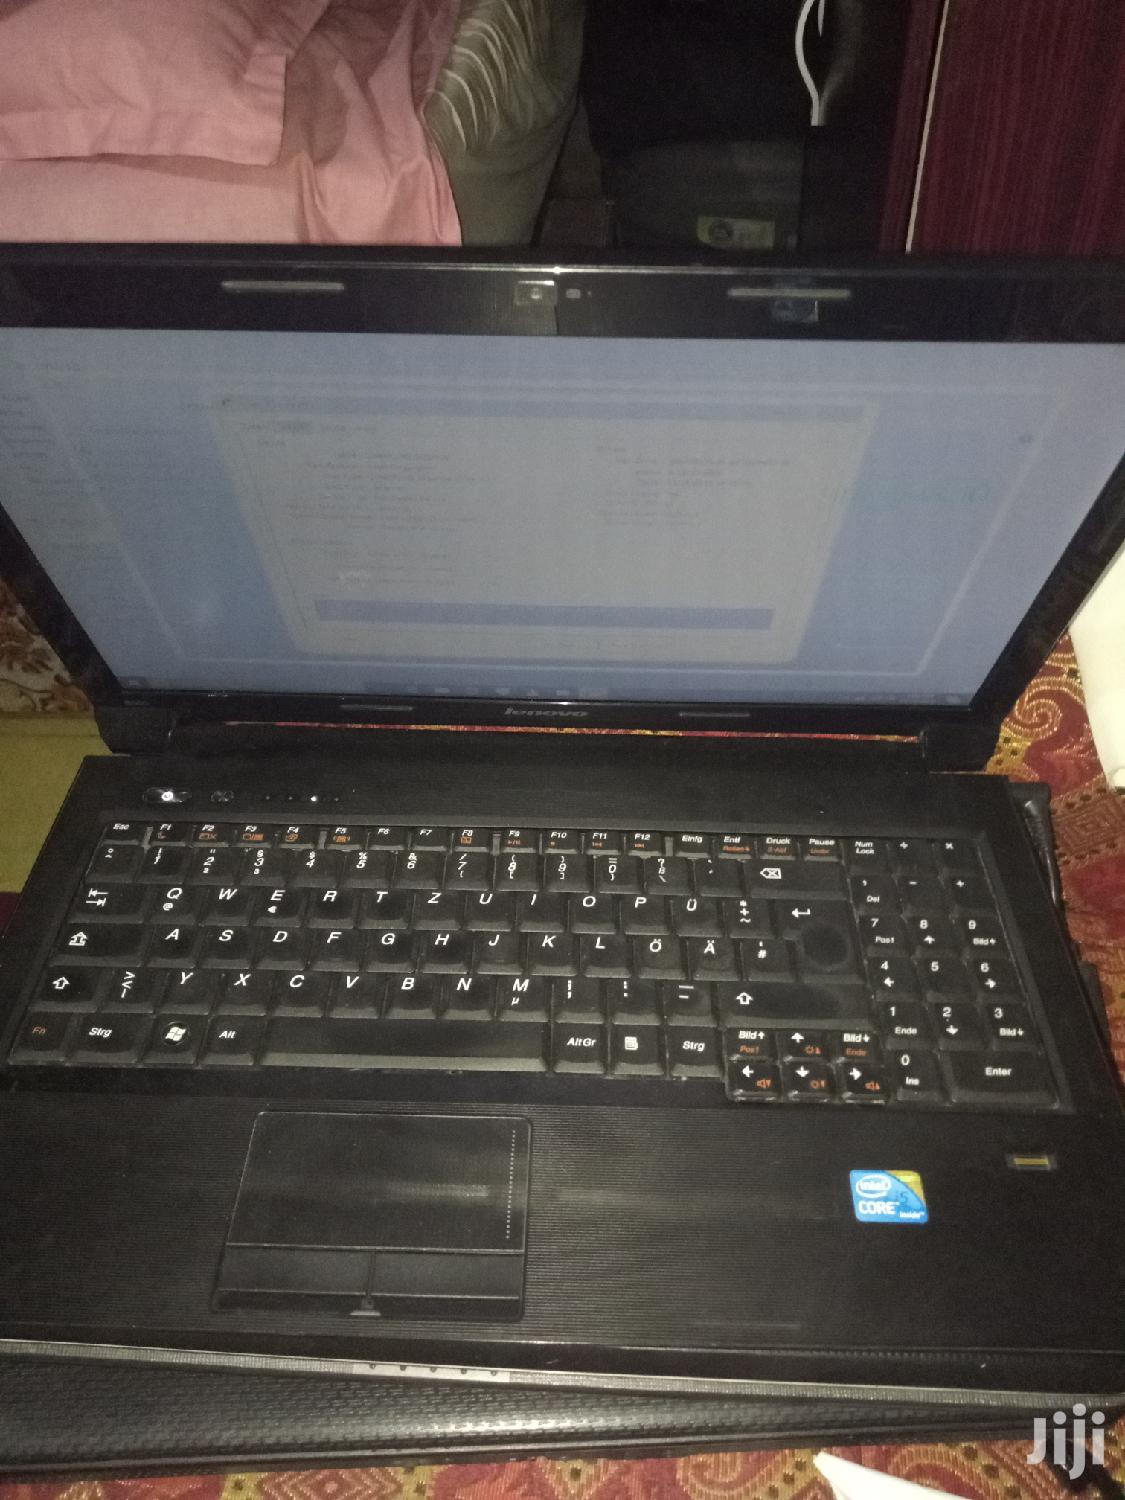 Laptop Lenovo 8GB Intel Core i5 HDD 500GB | Laptops & Computers for sale in Darkuman, Greater Accra, Ghana